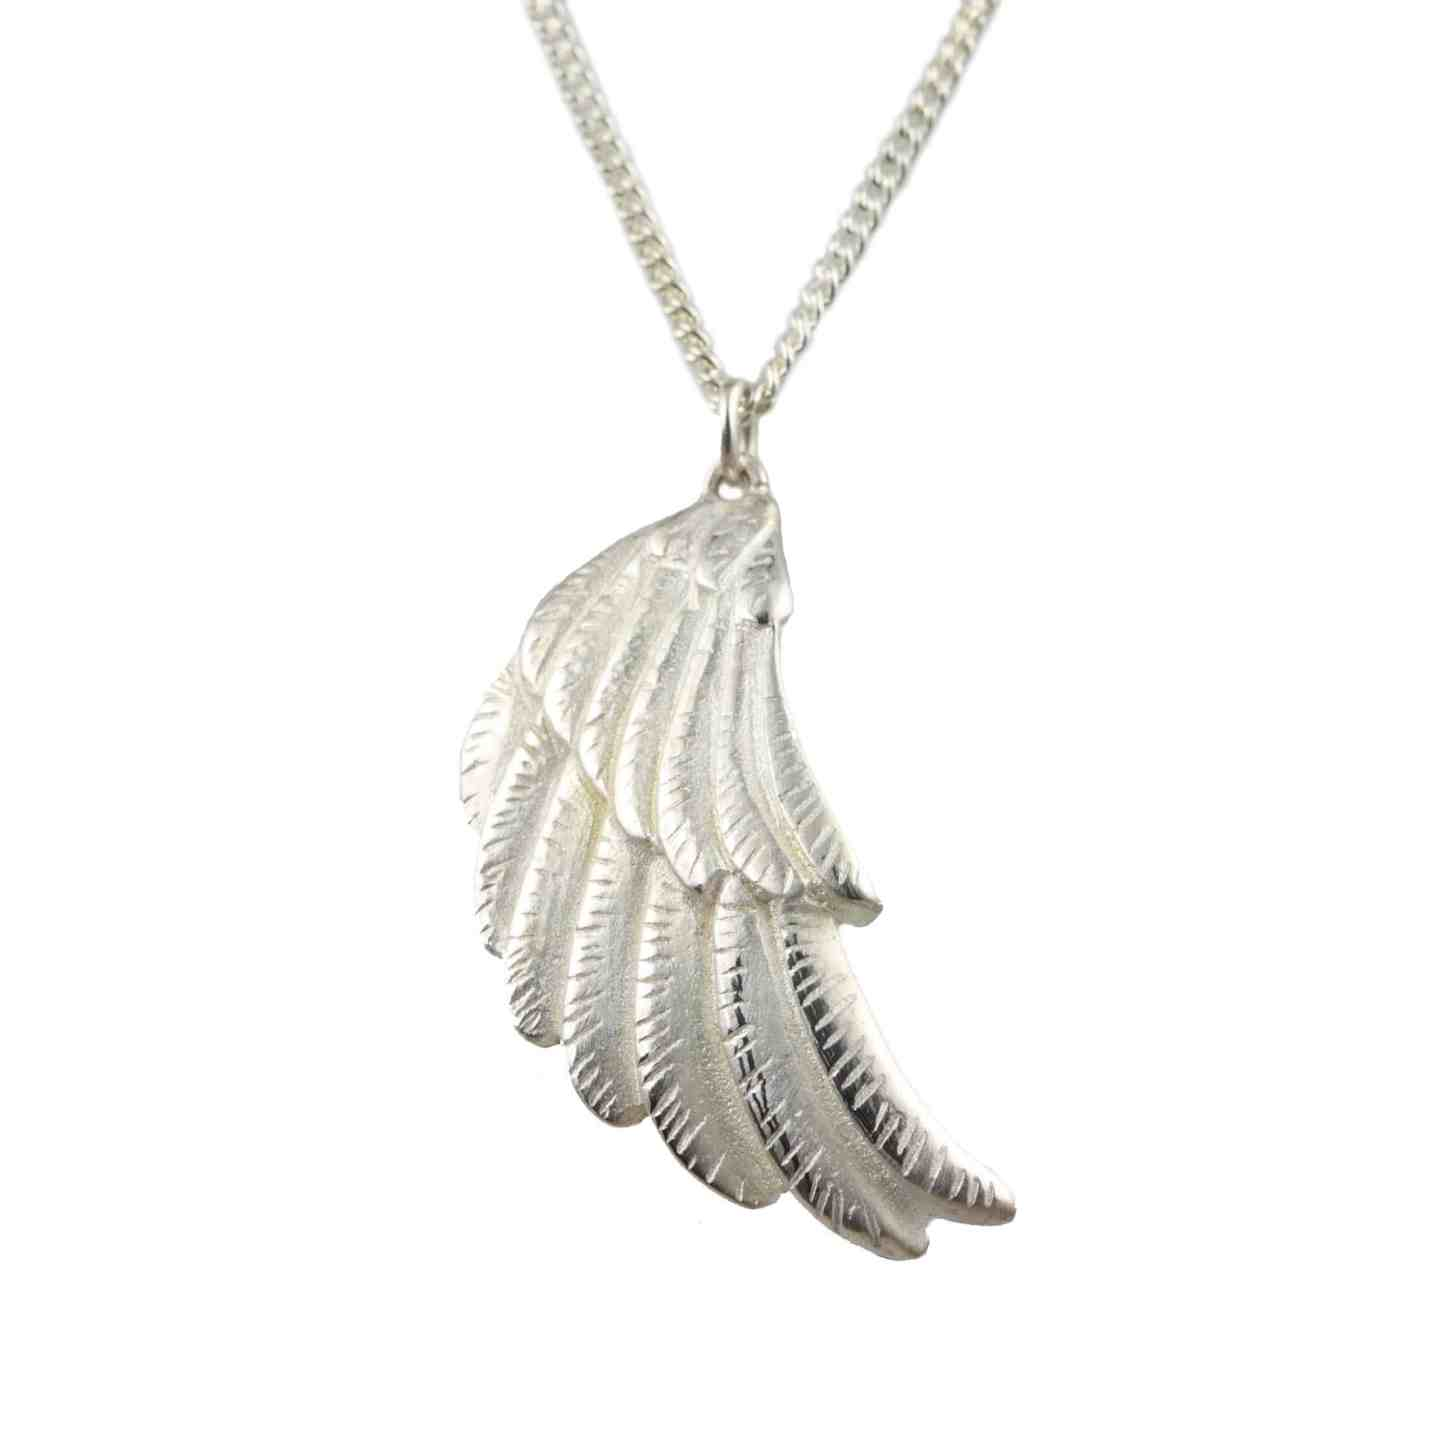 Mother's Day Giveaway for a Sterling Silver Wing Pendant Necklace worth £109